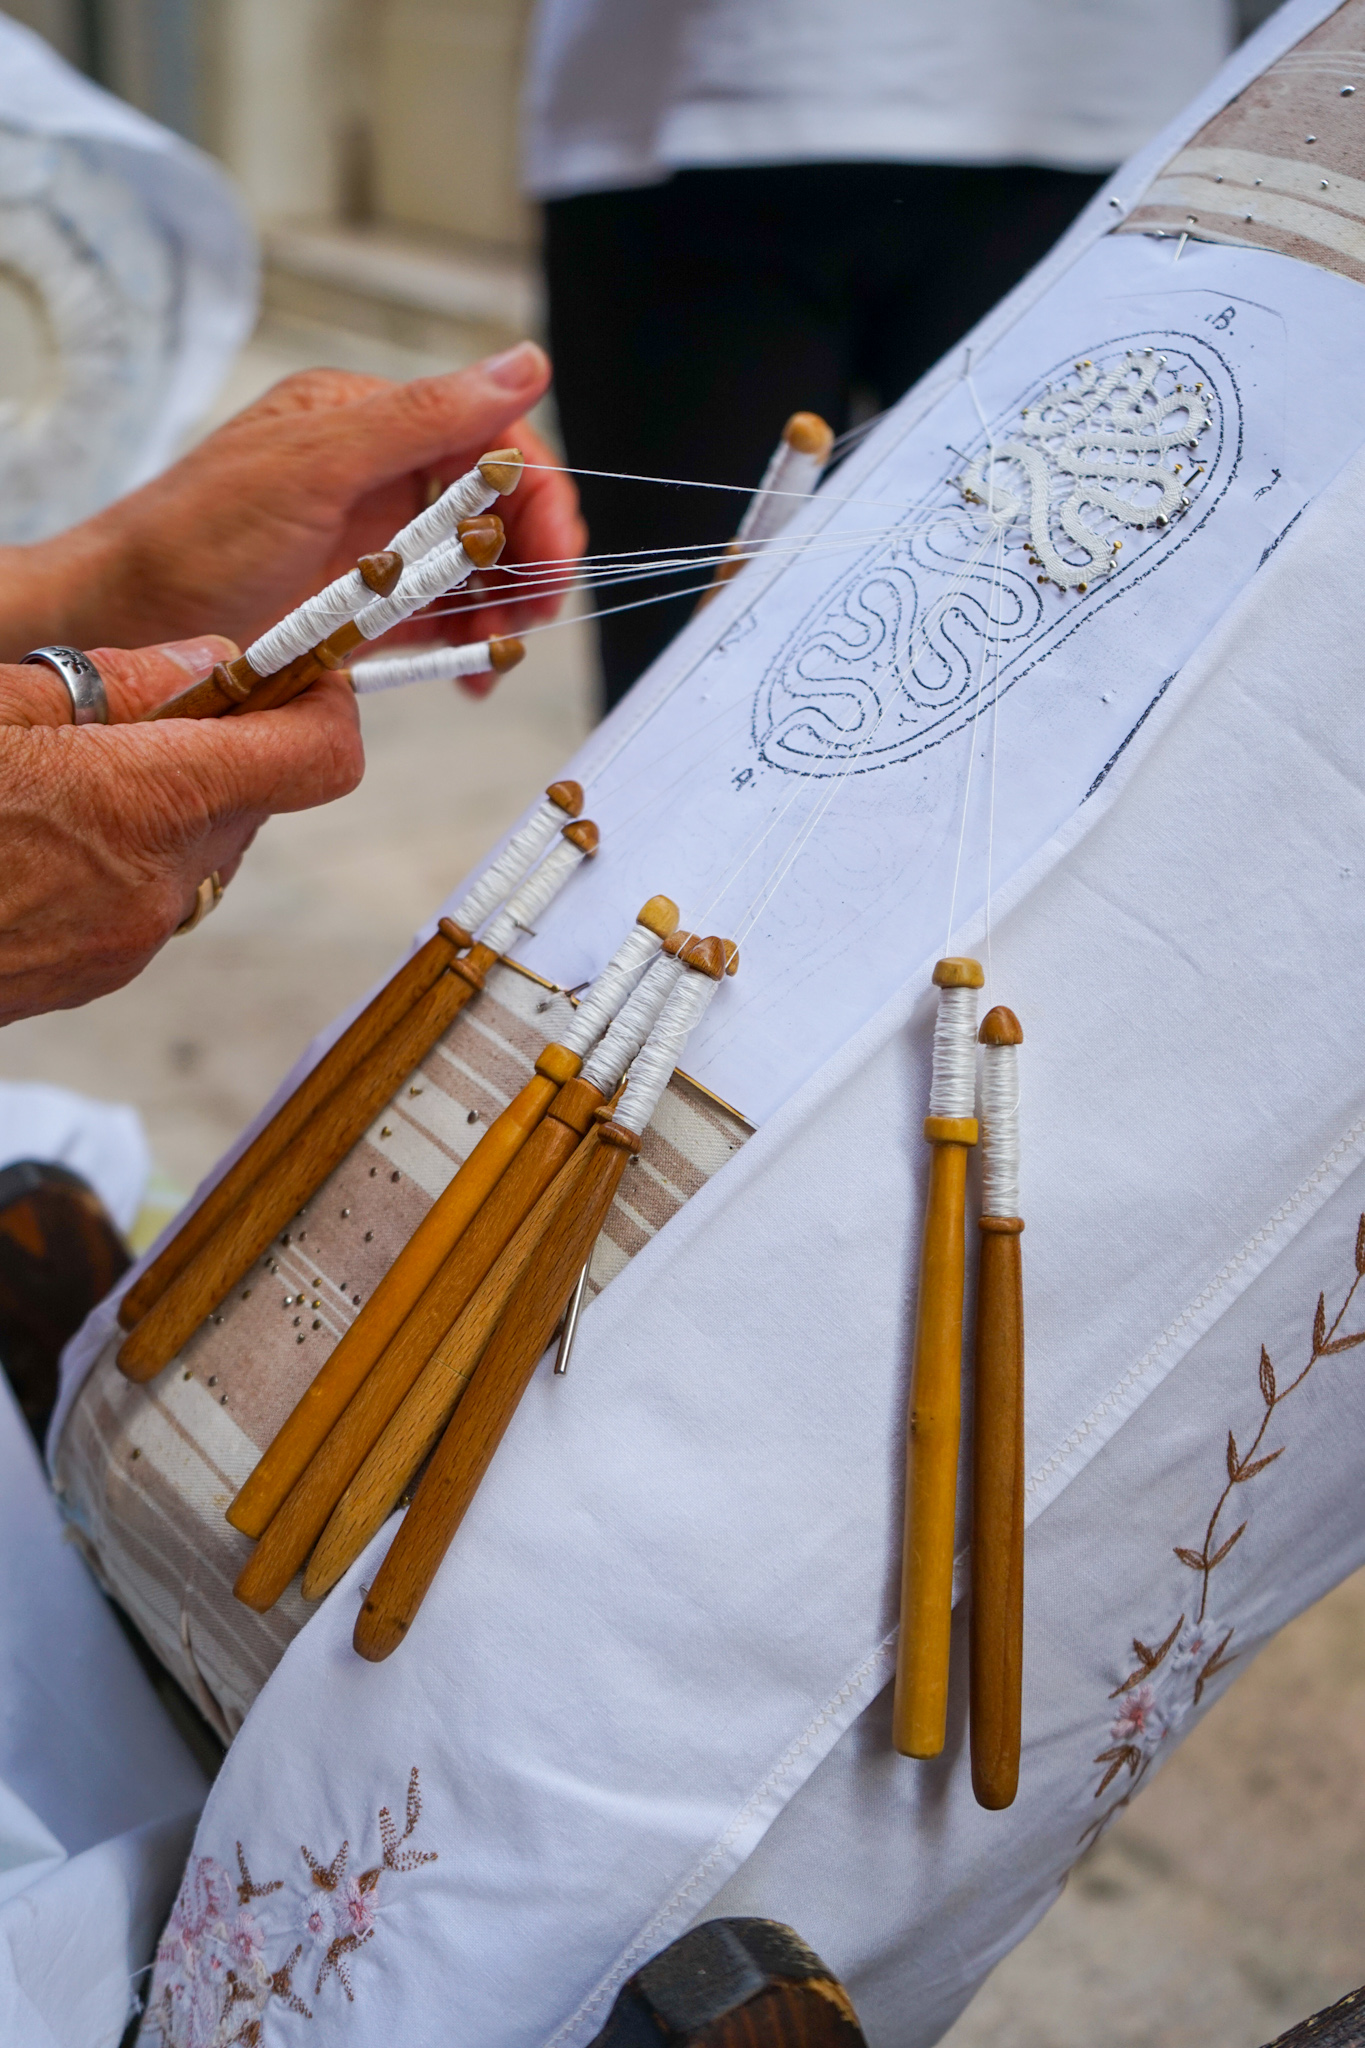 The ancient lace-making tradition in Isernia, in the region of Molise